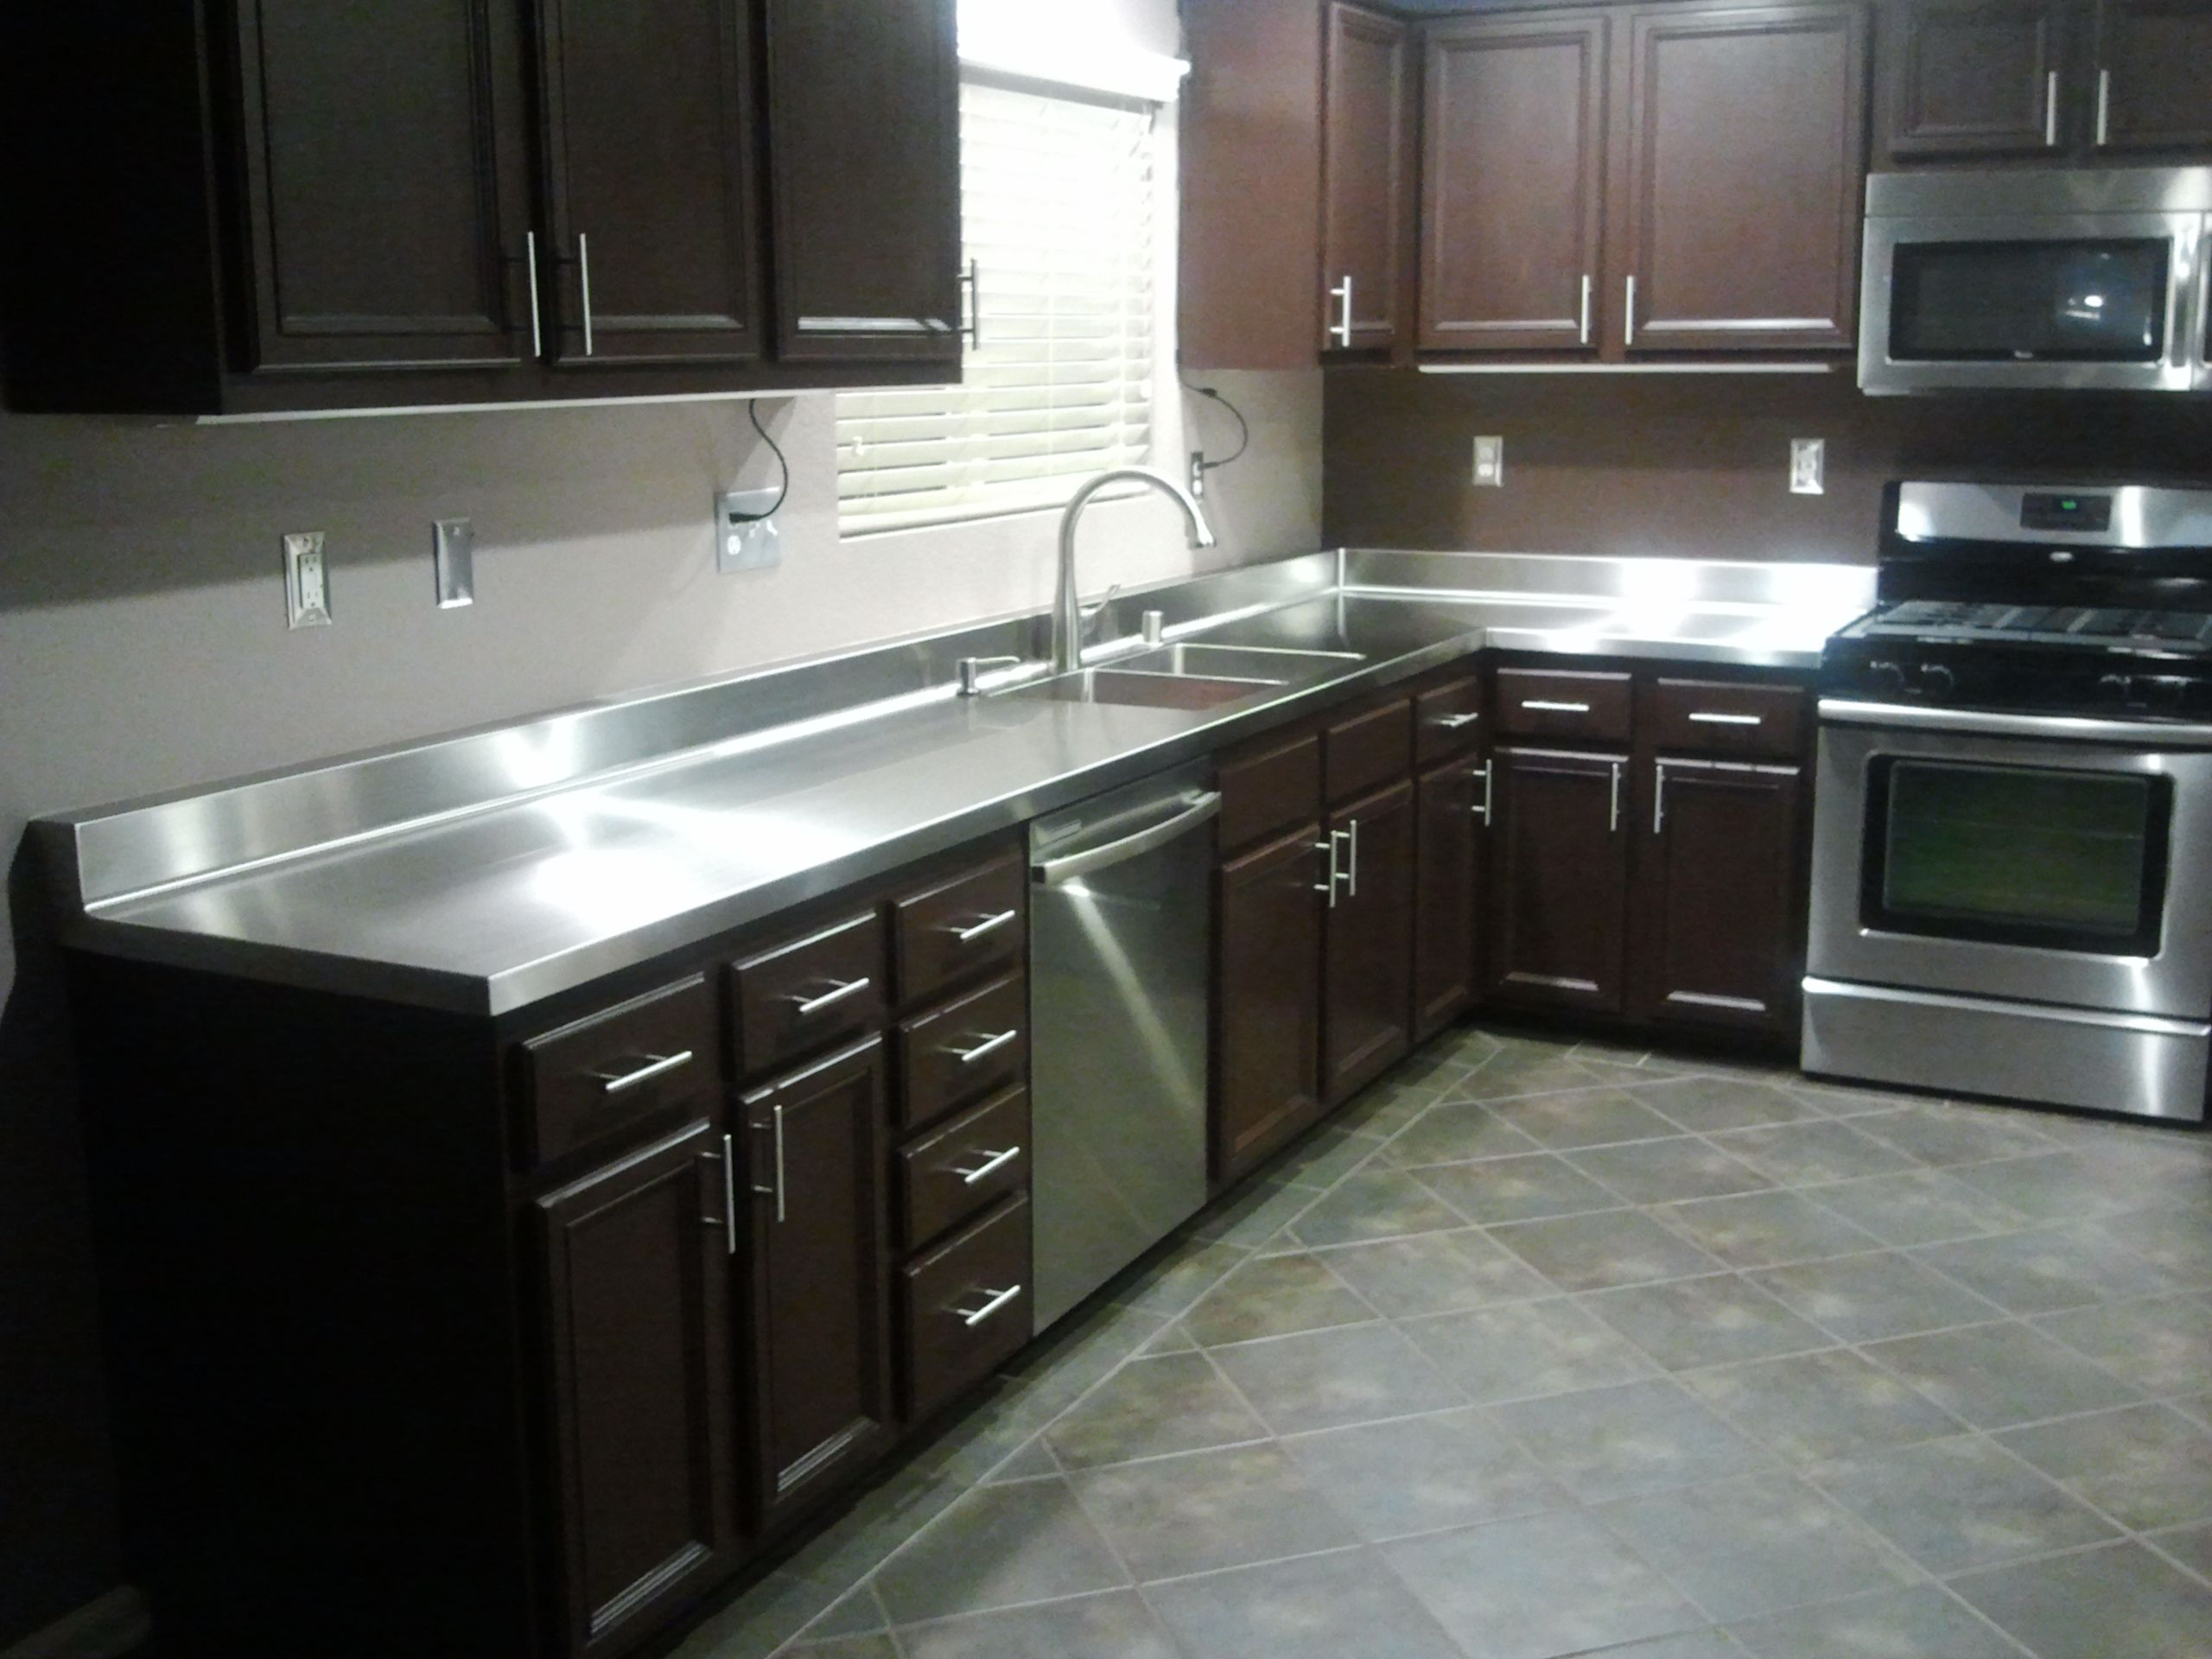 Stainless Steel Cabinets And Countertops Remarkable Fab Wright Inc 714 554 5544 2560 X 1920